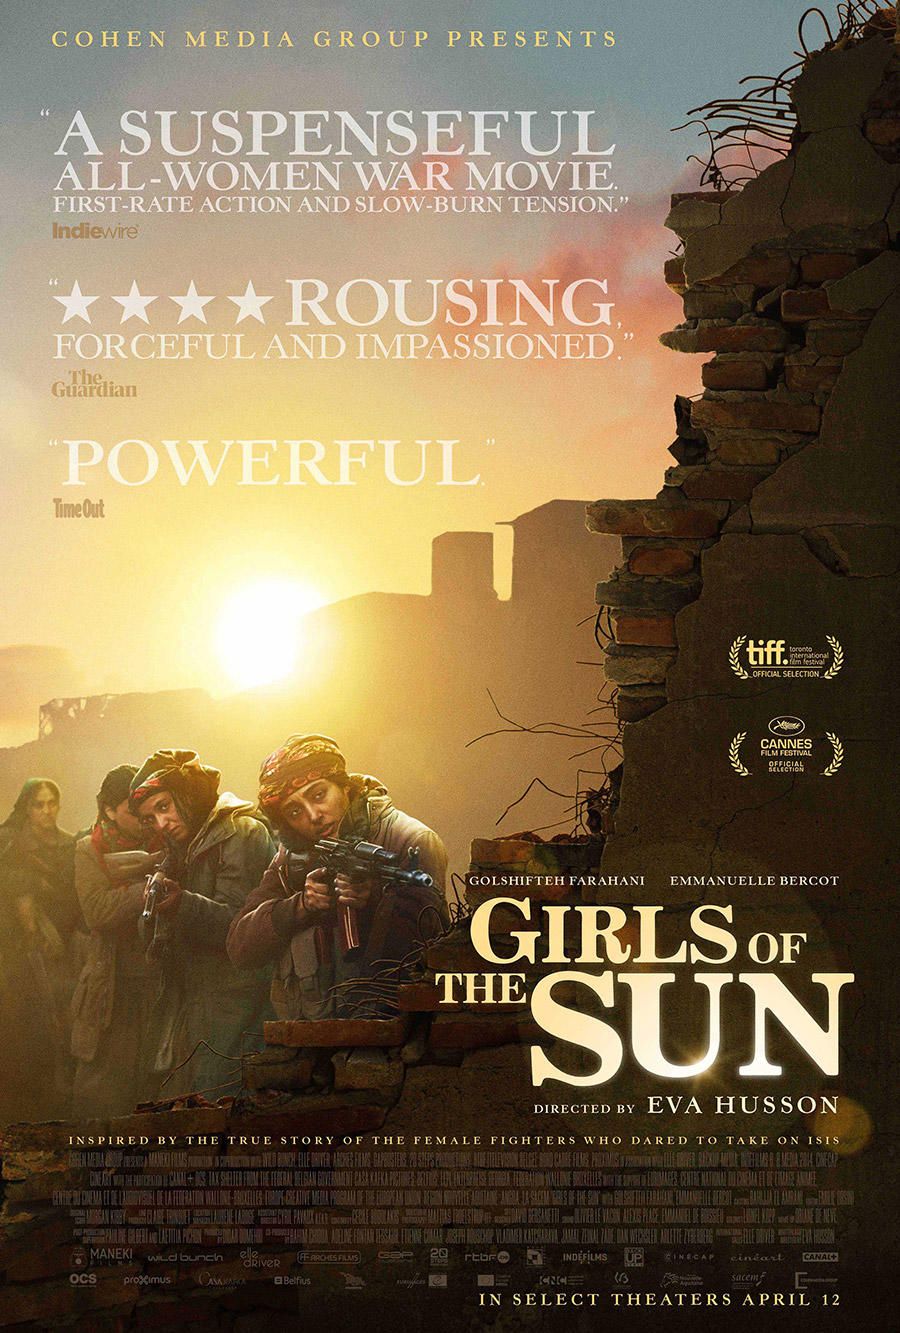 Girls of the Sun poster art